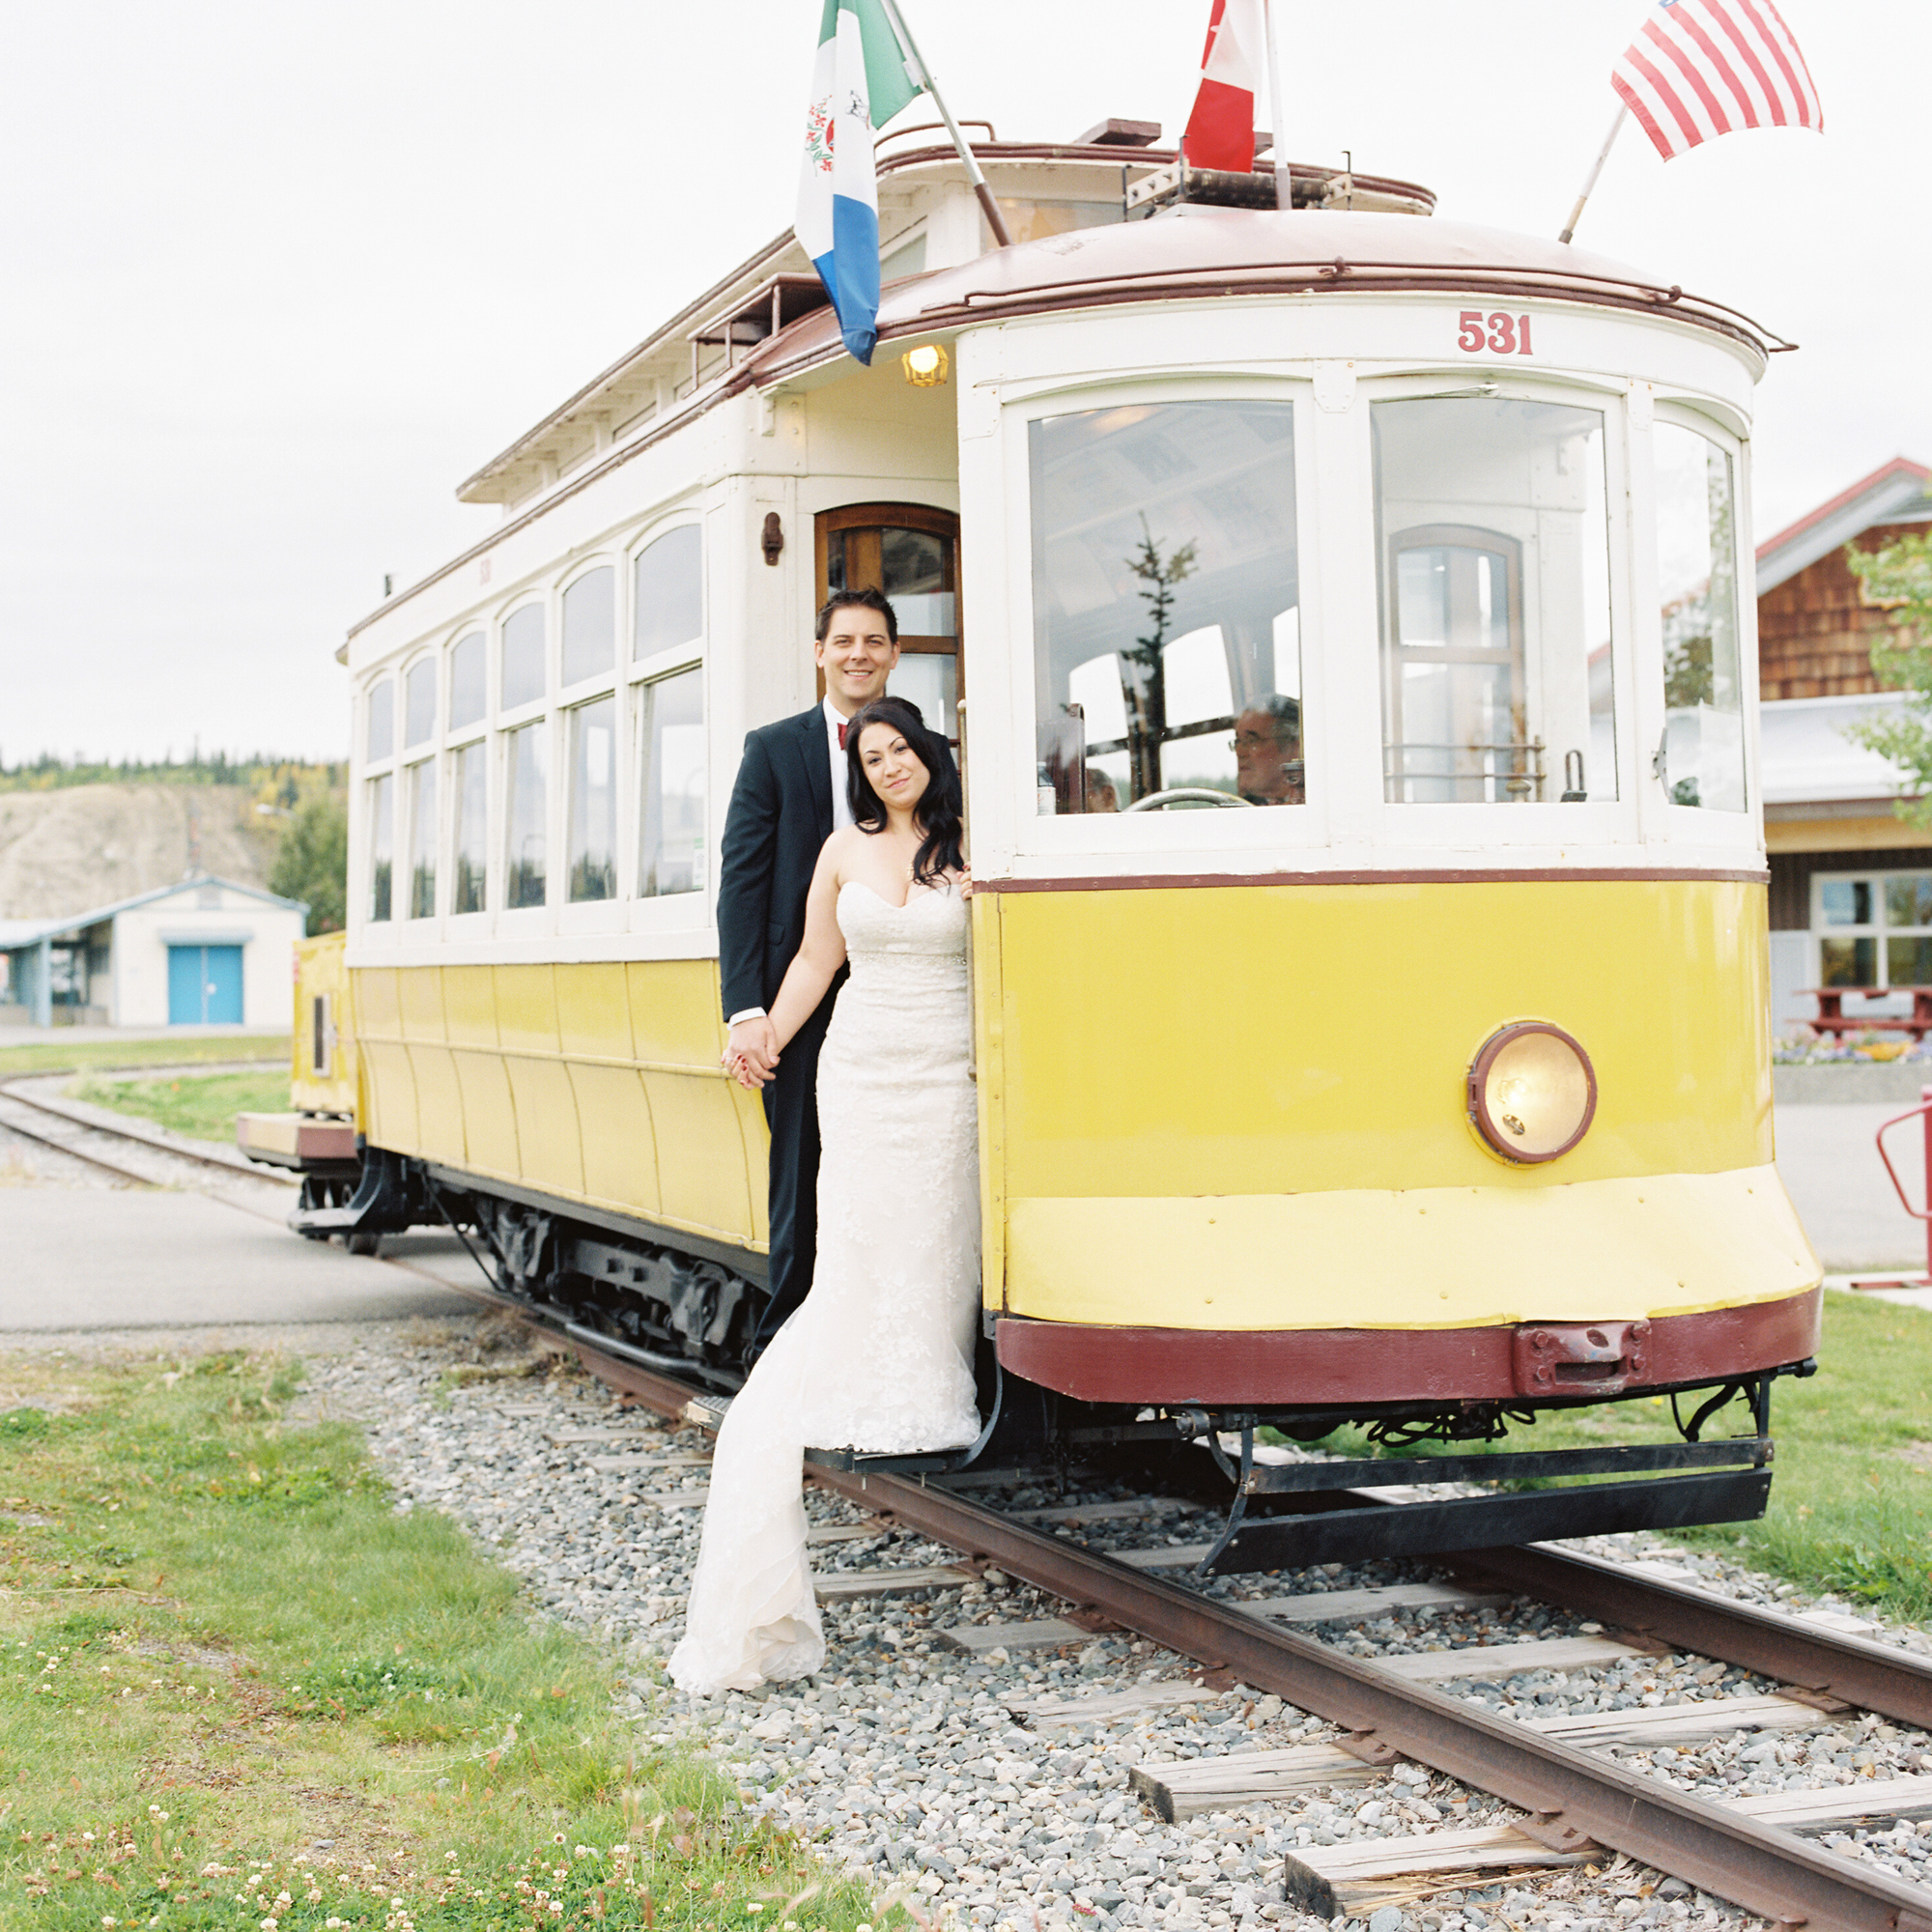 Portrait of newly married couple standing in train car downtown Whitehorse, Yukon